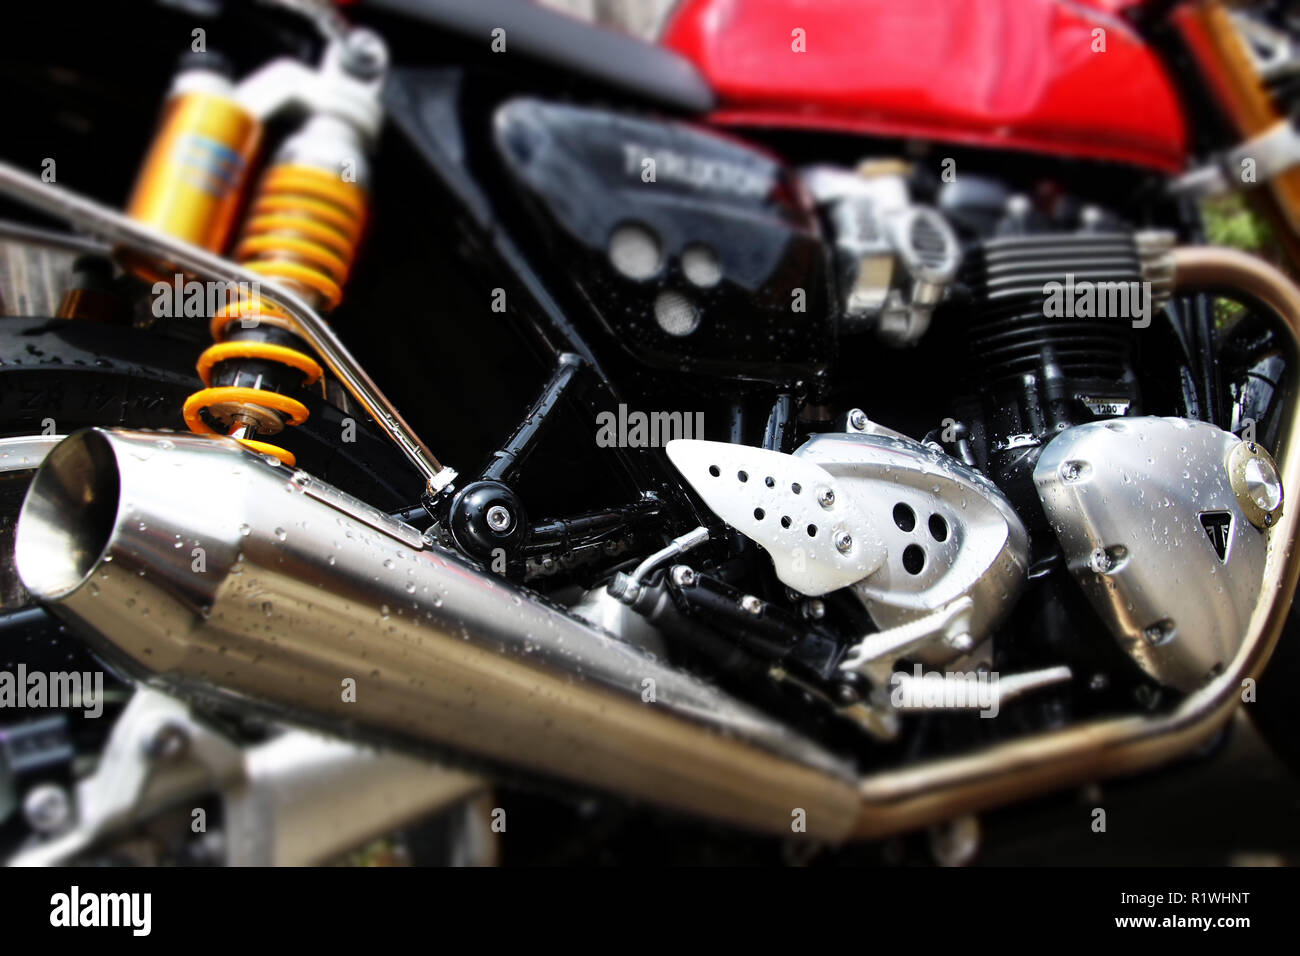 Racing Machine Stock Photos & Racing Machine Stock Images - Alamy